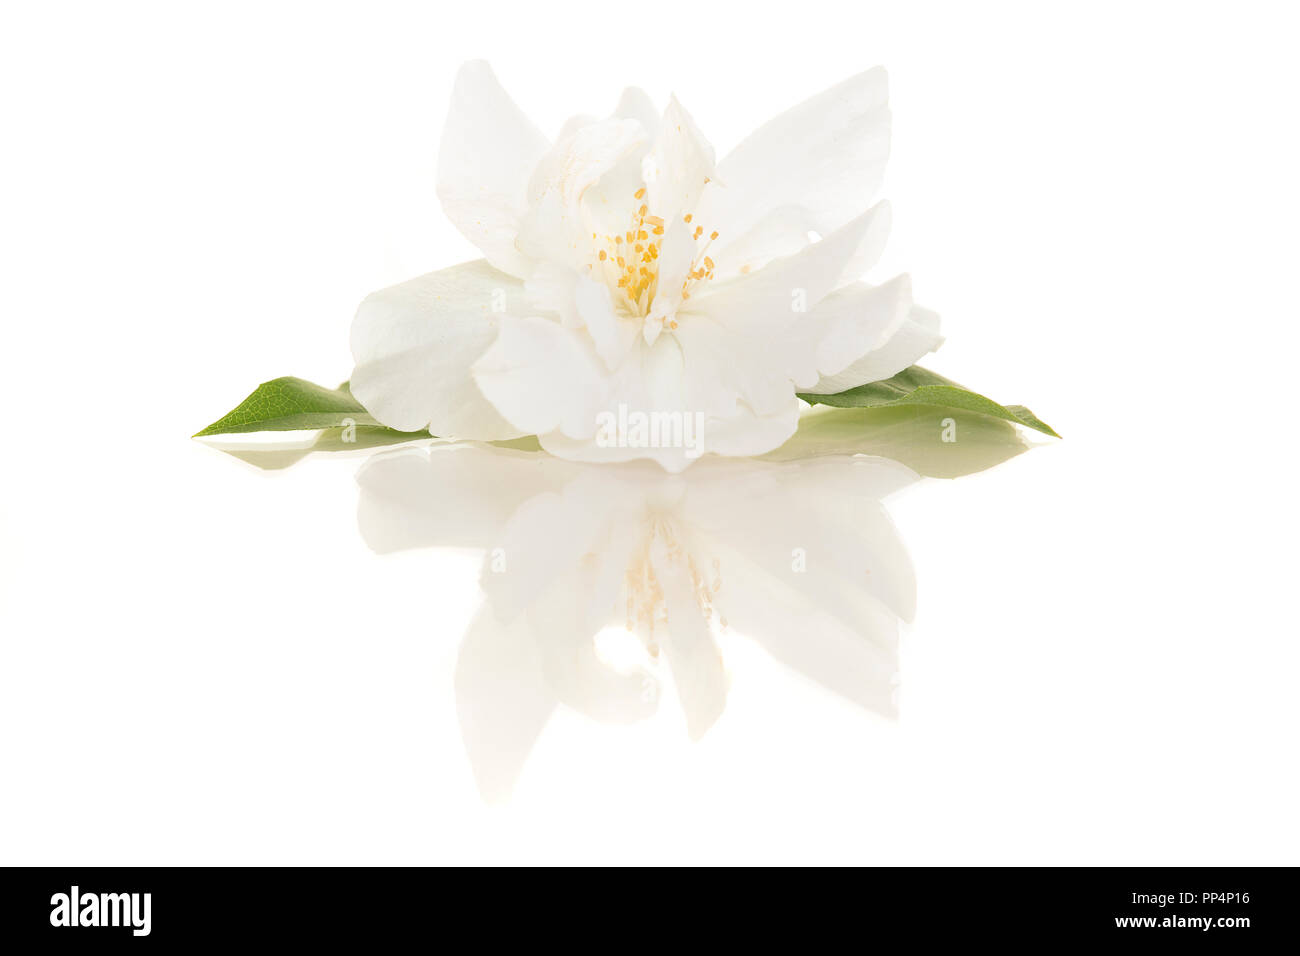 Blooming Single Jasmine Flower On A White Background With Its